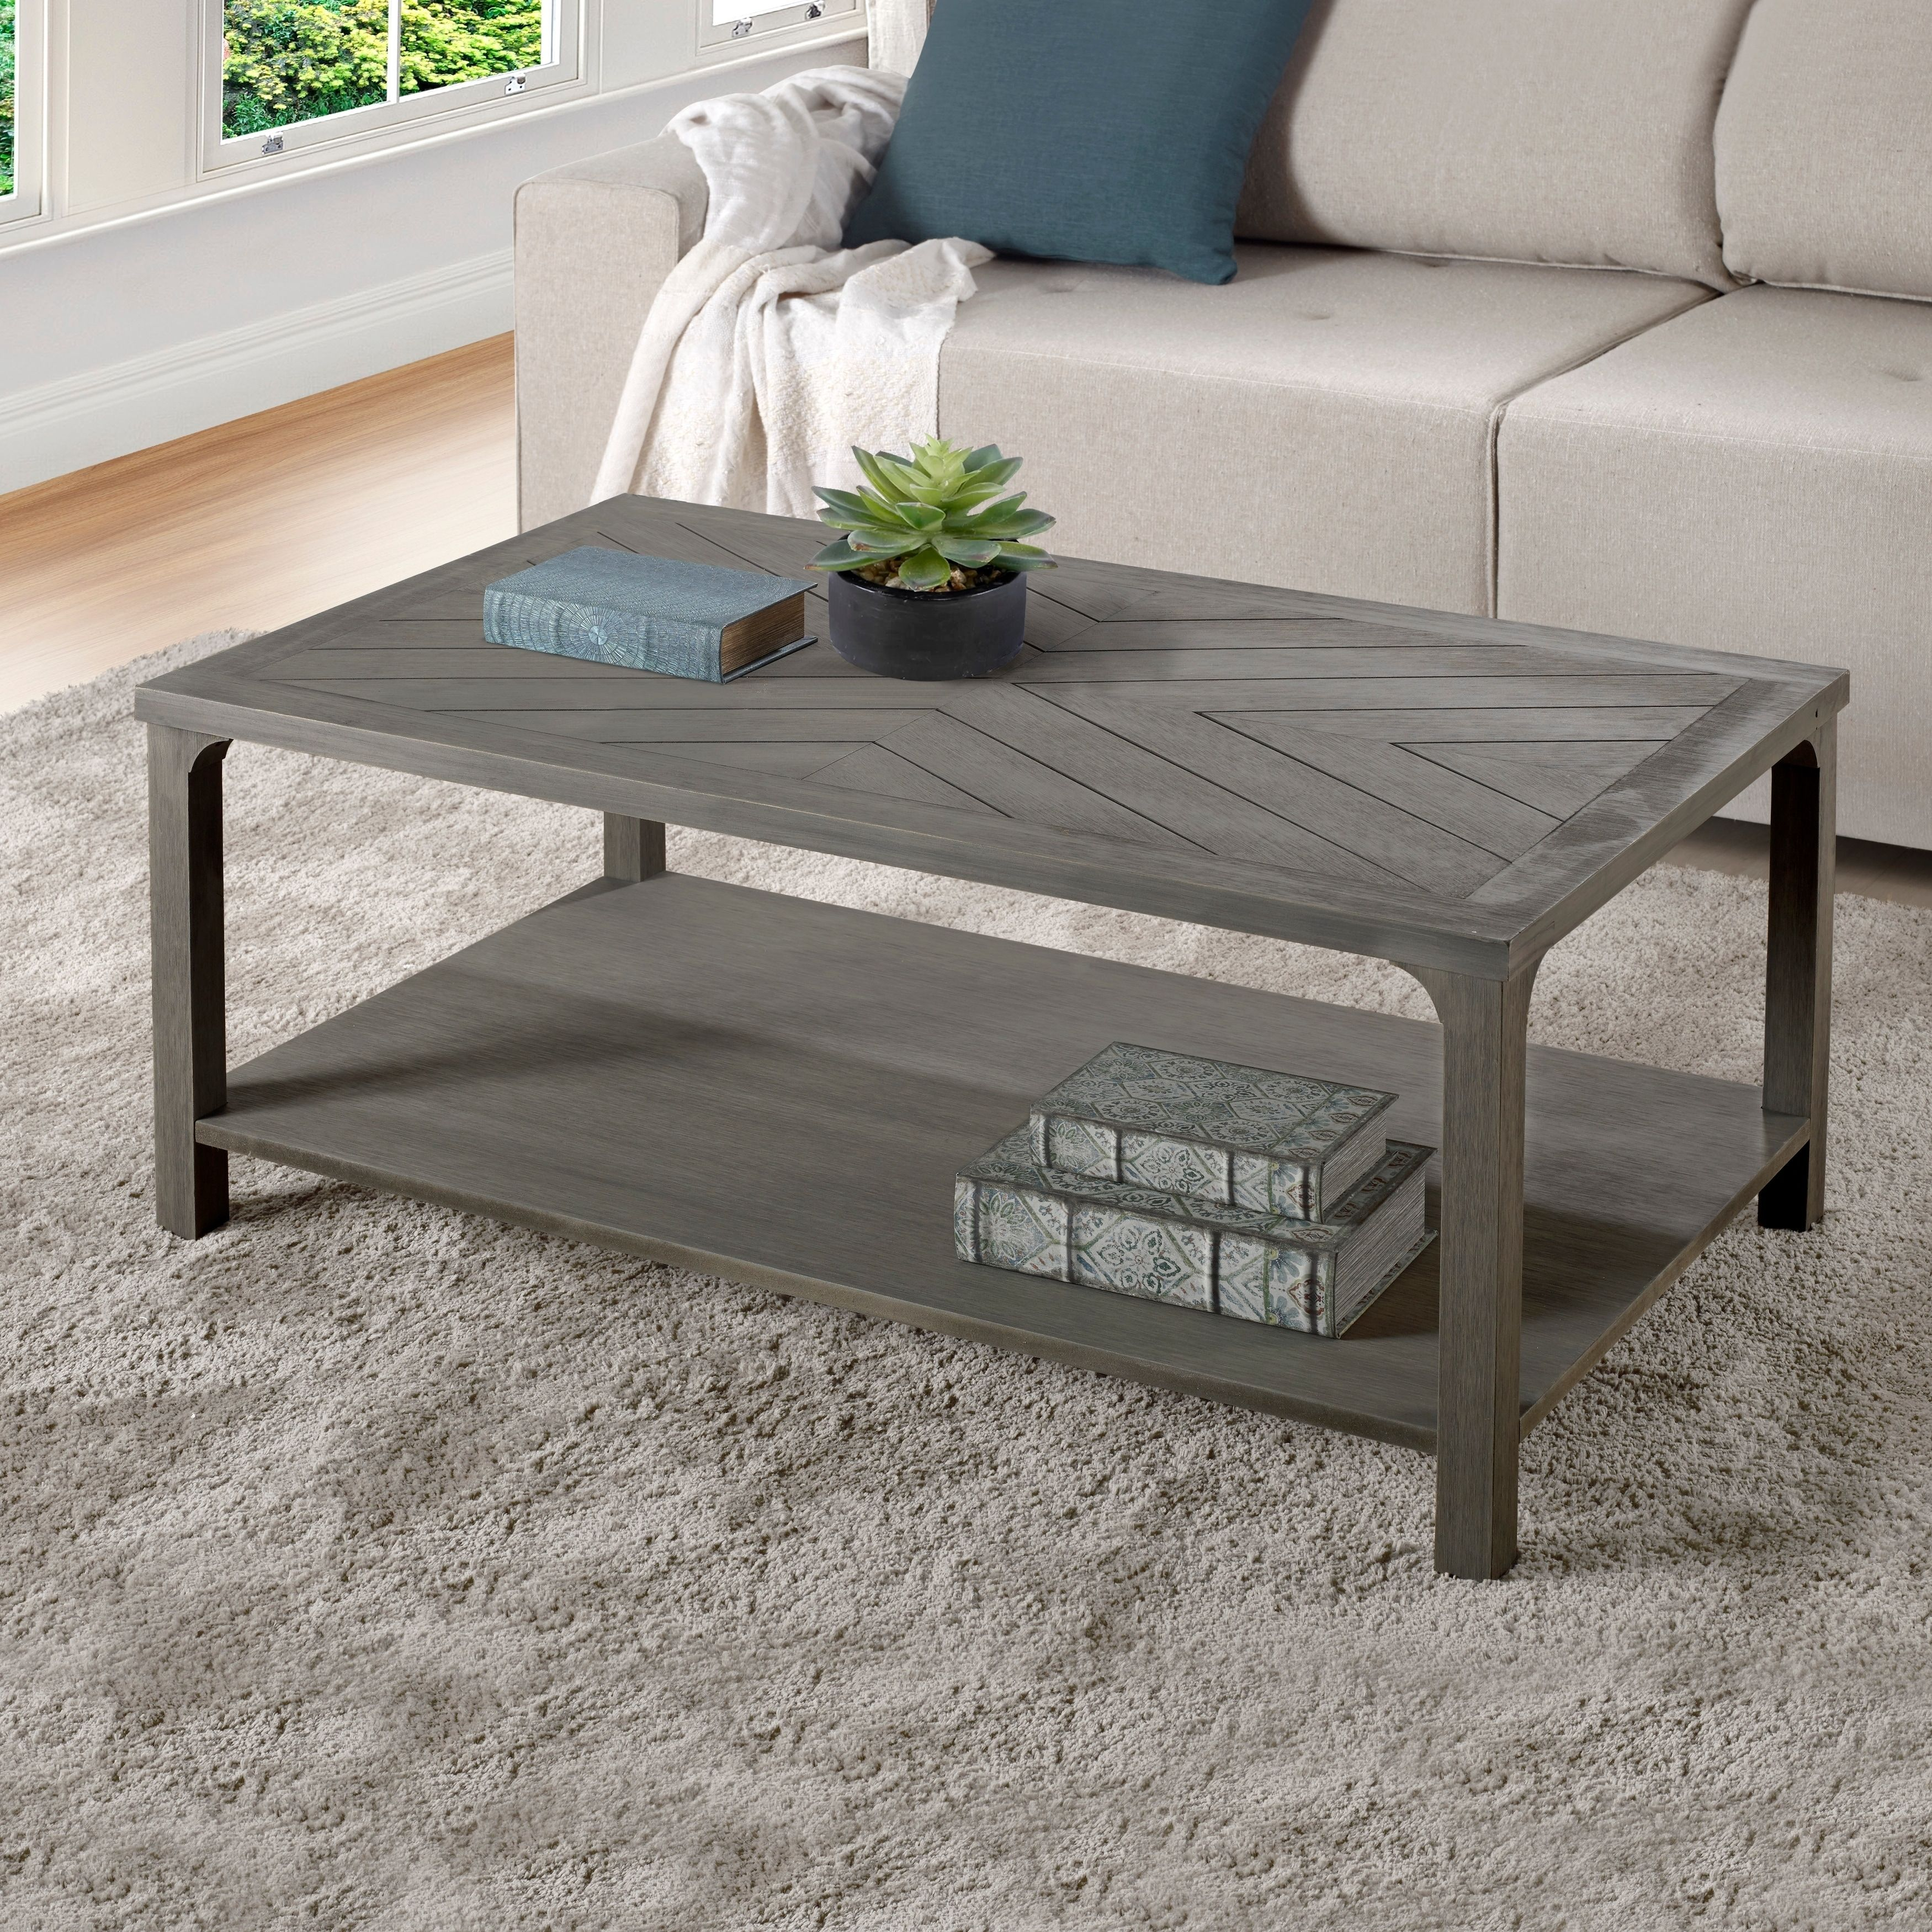 Our Best Living Room Furniture Deals Coffee Table Grey Coffee Table Chevron Coffee Tables [ 3500 x 3500 Pixel ]